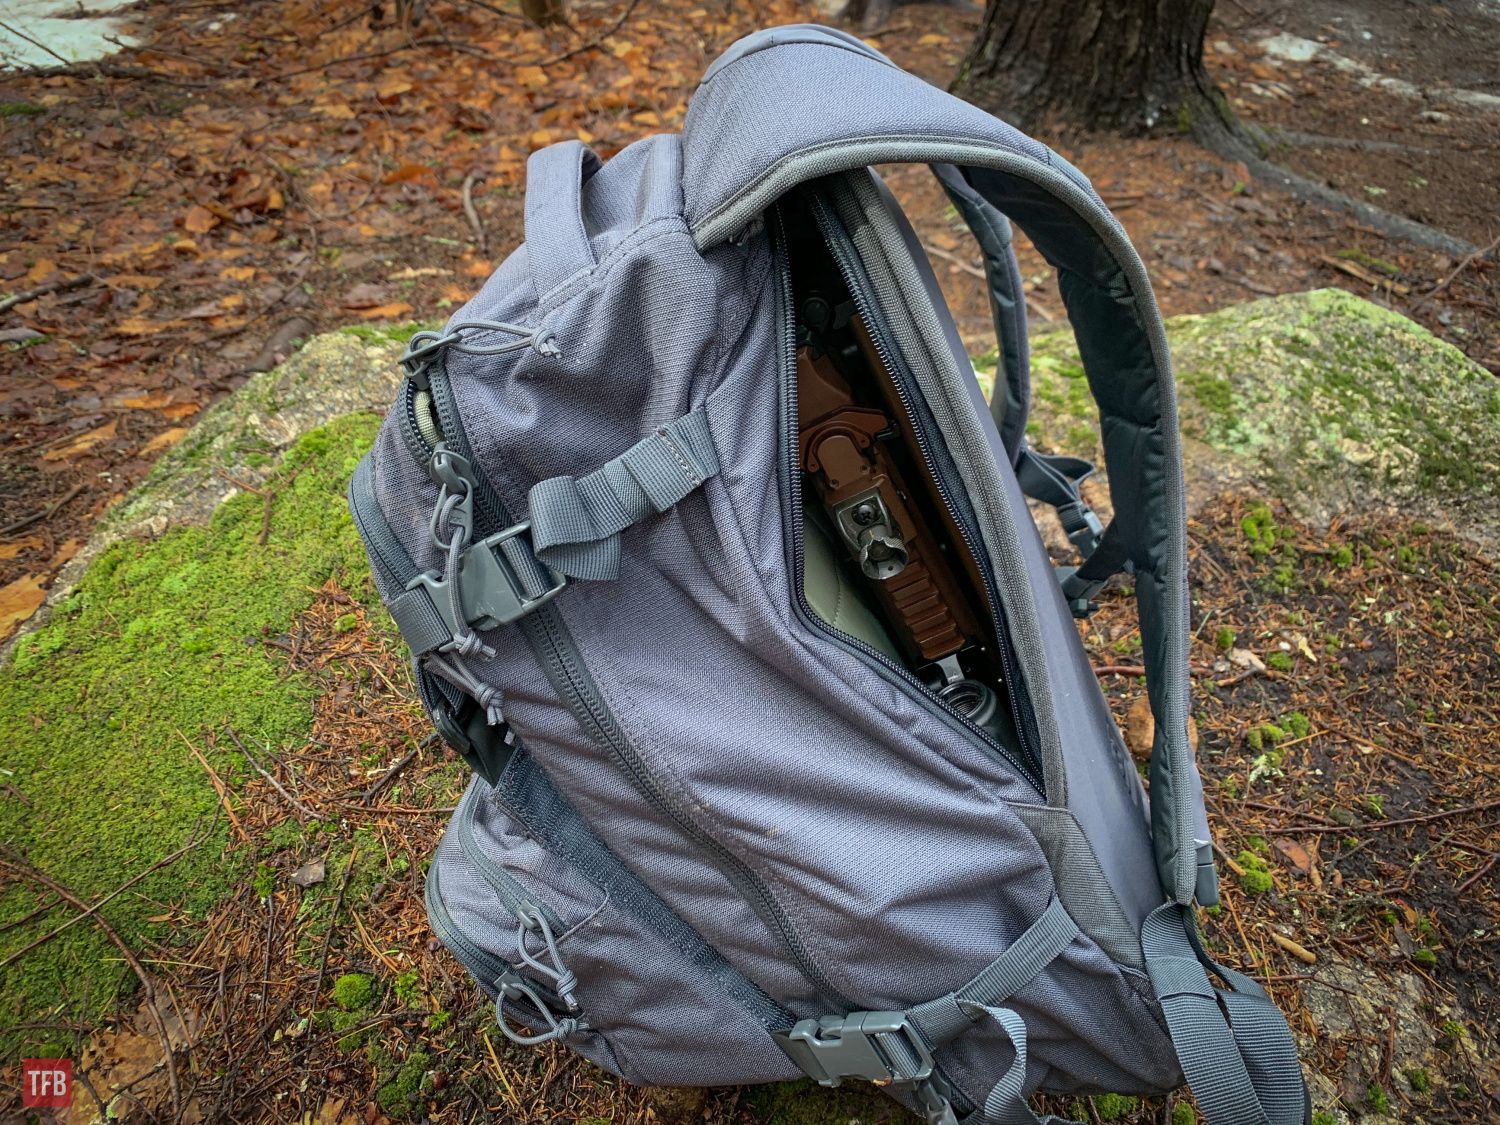 Summer Solitude: Gearing Up With 5.11 Bags, Packs And Boots